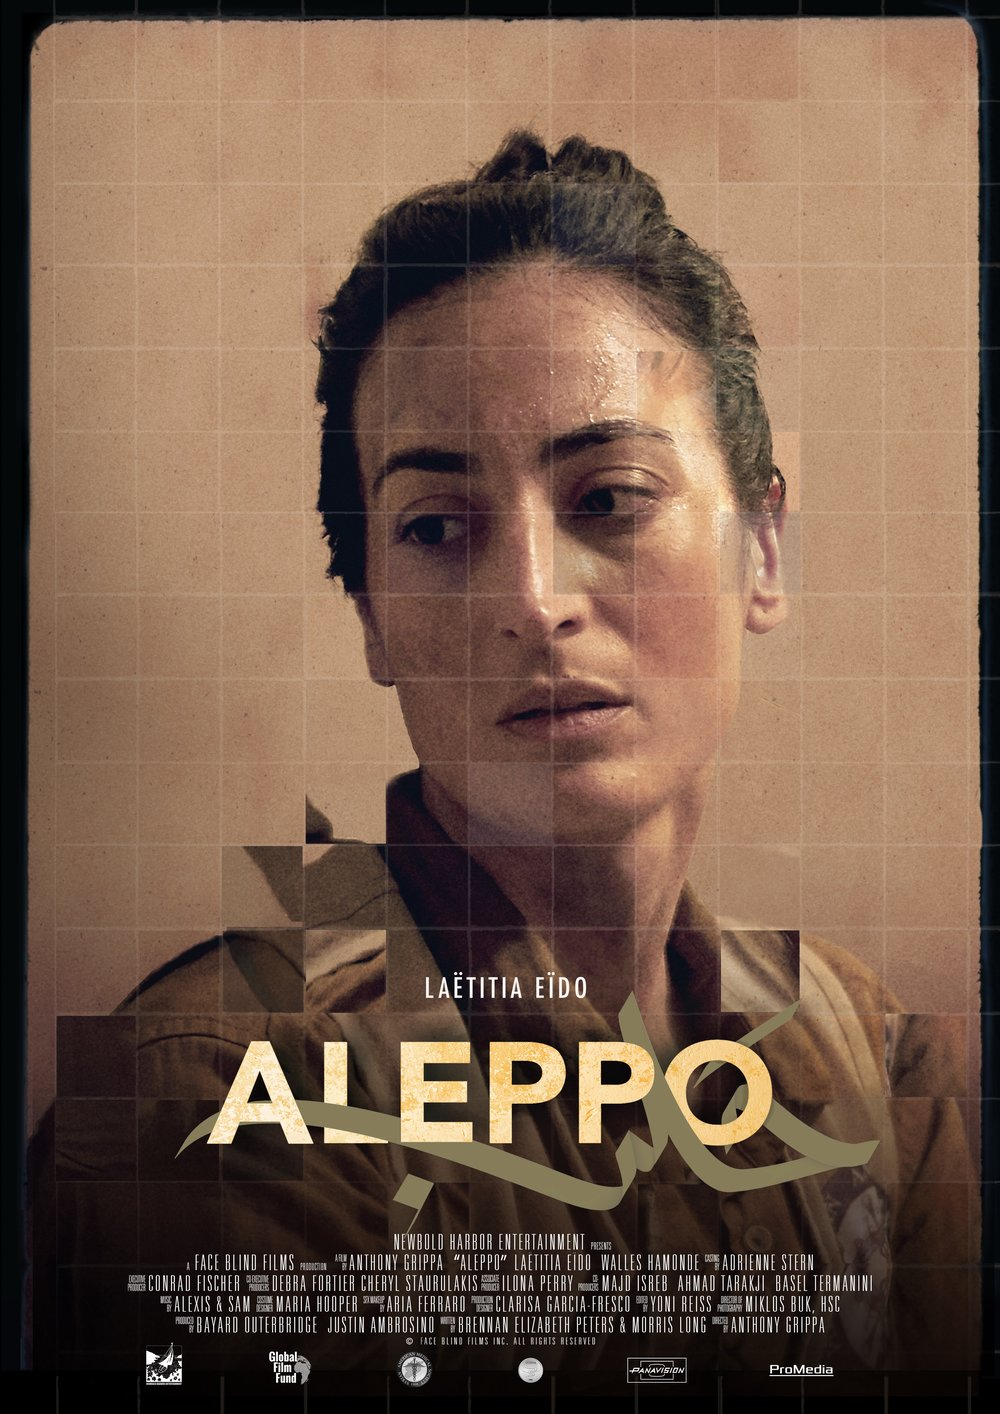 Aleppo Movie Poster.jpg